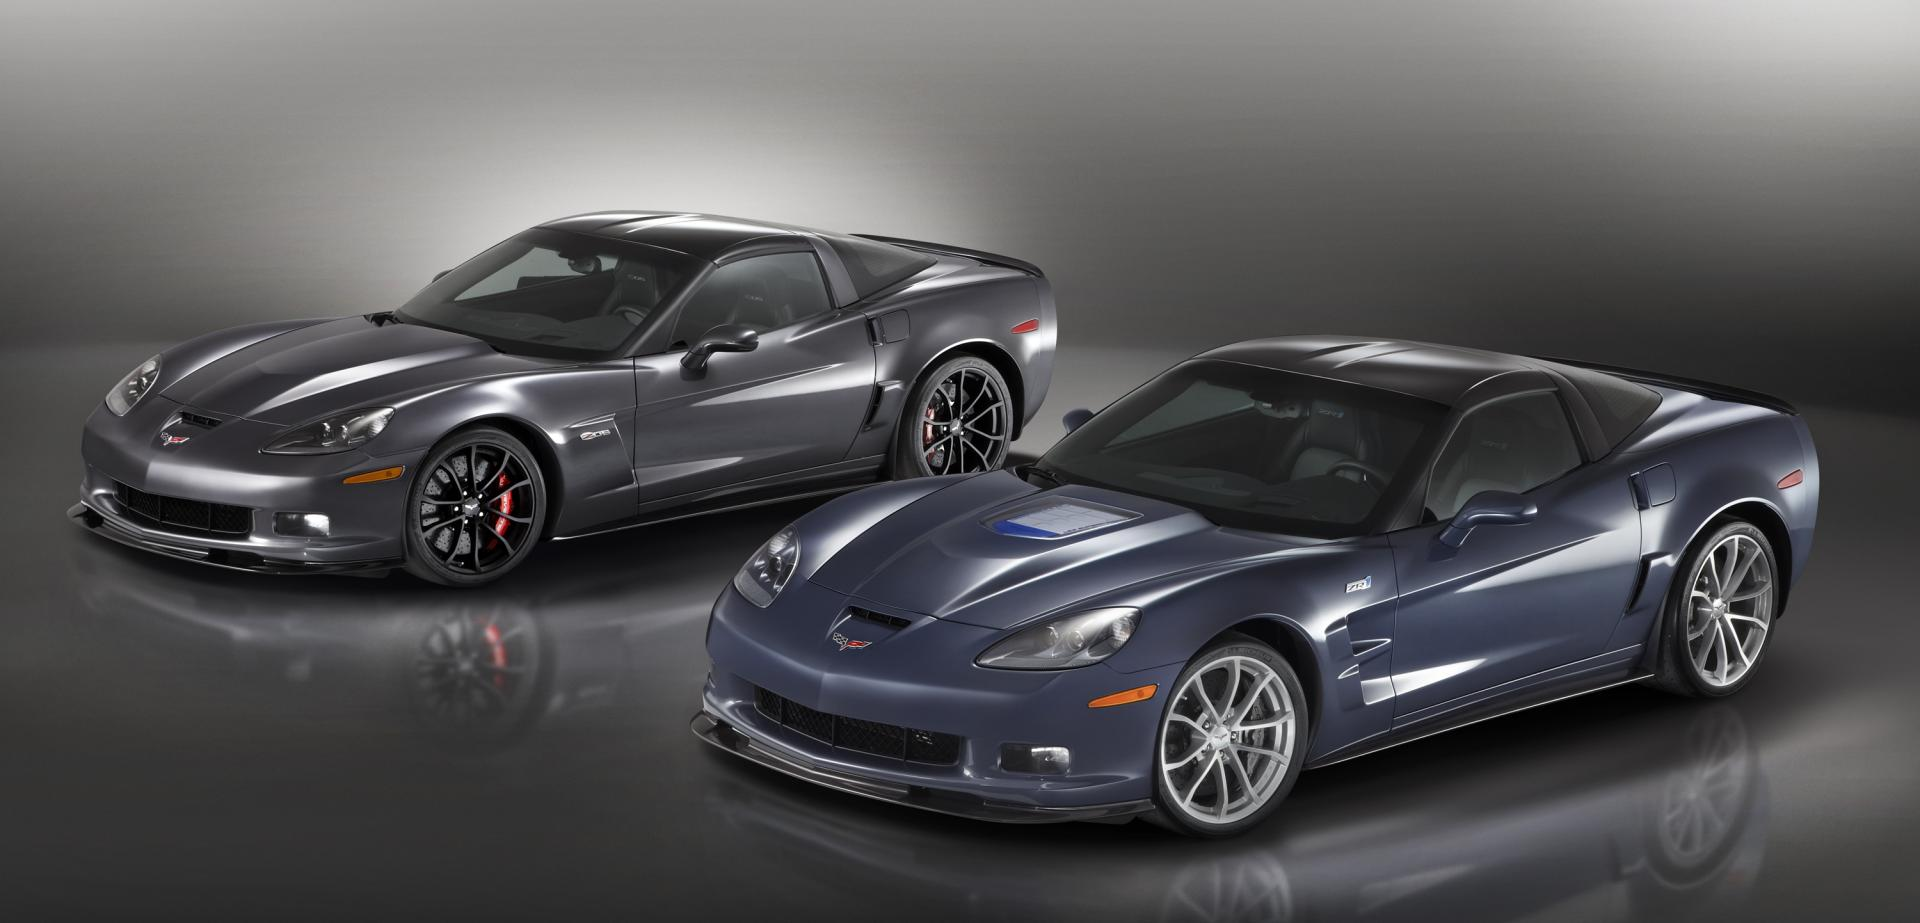 2012 Chevrolet Corvette ZR1 News and Information